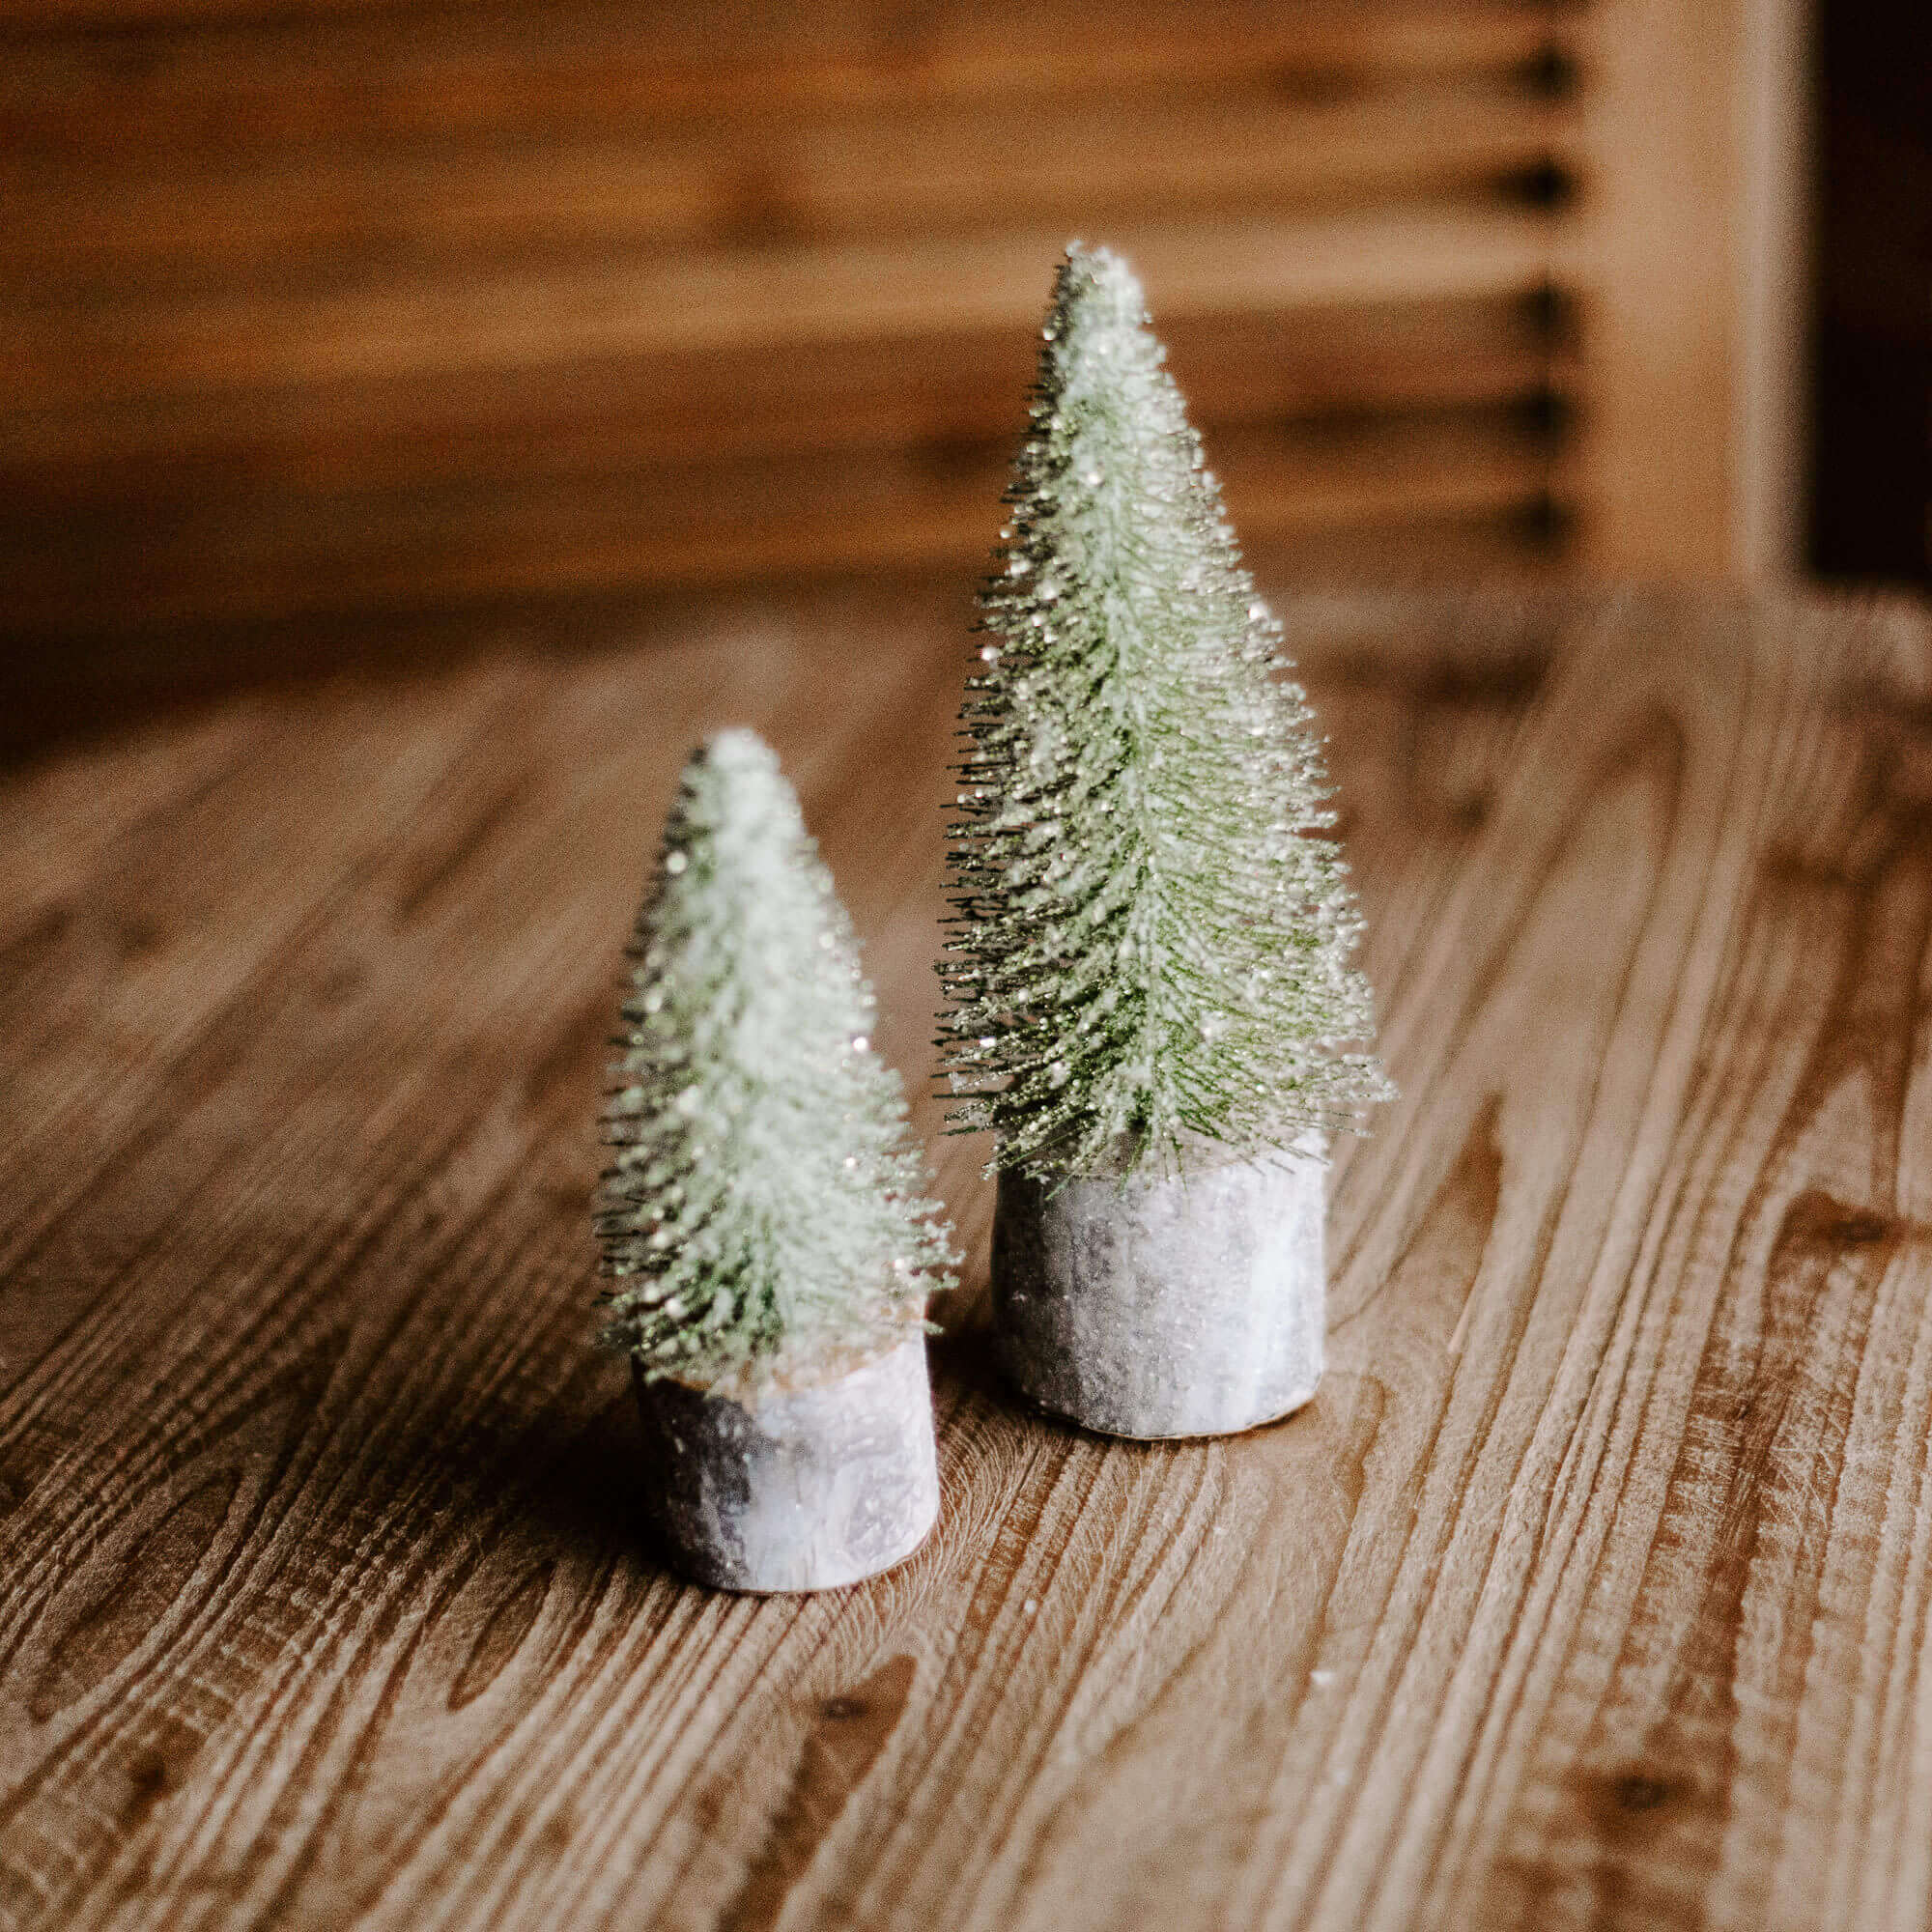 Small green foxtail trees with a silver metal base in 3 different sizes